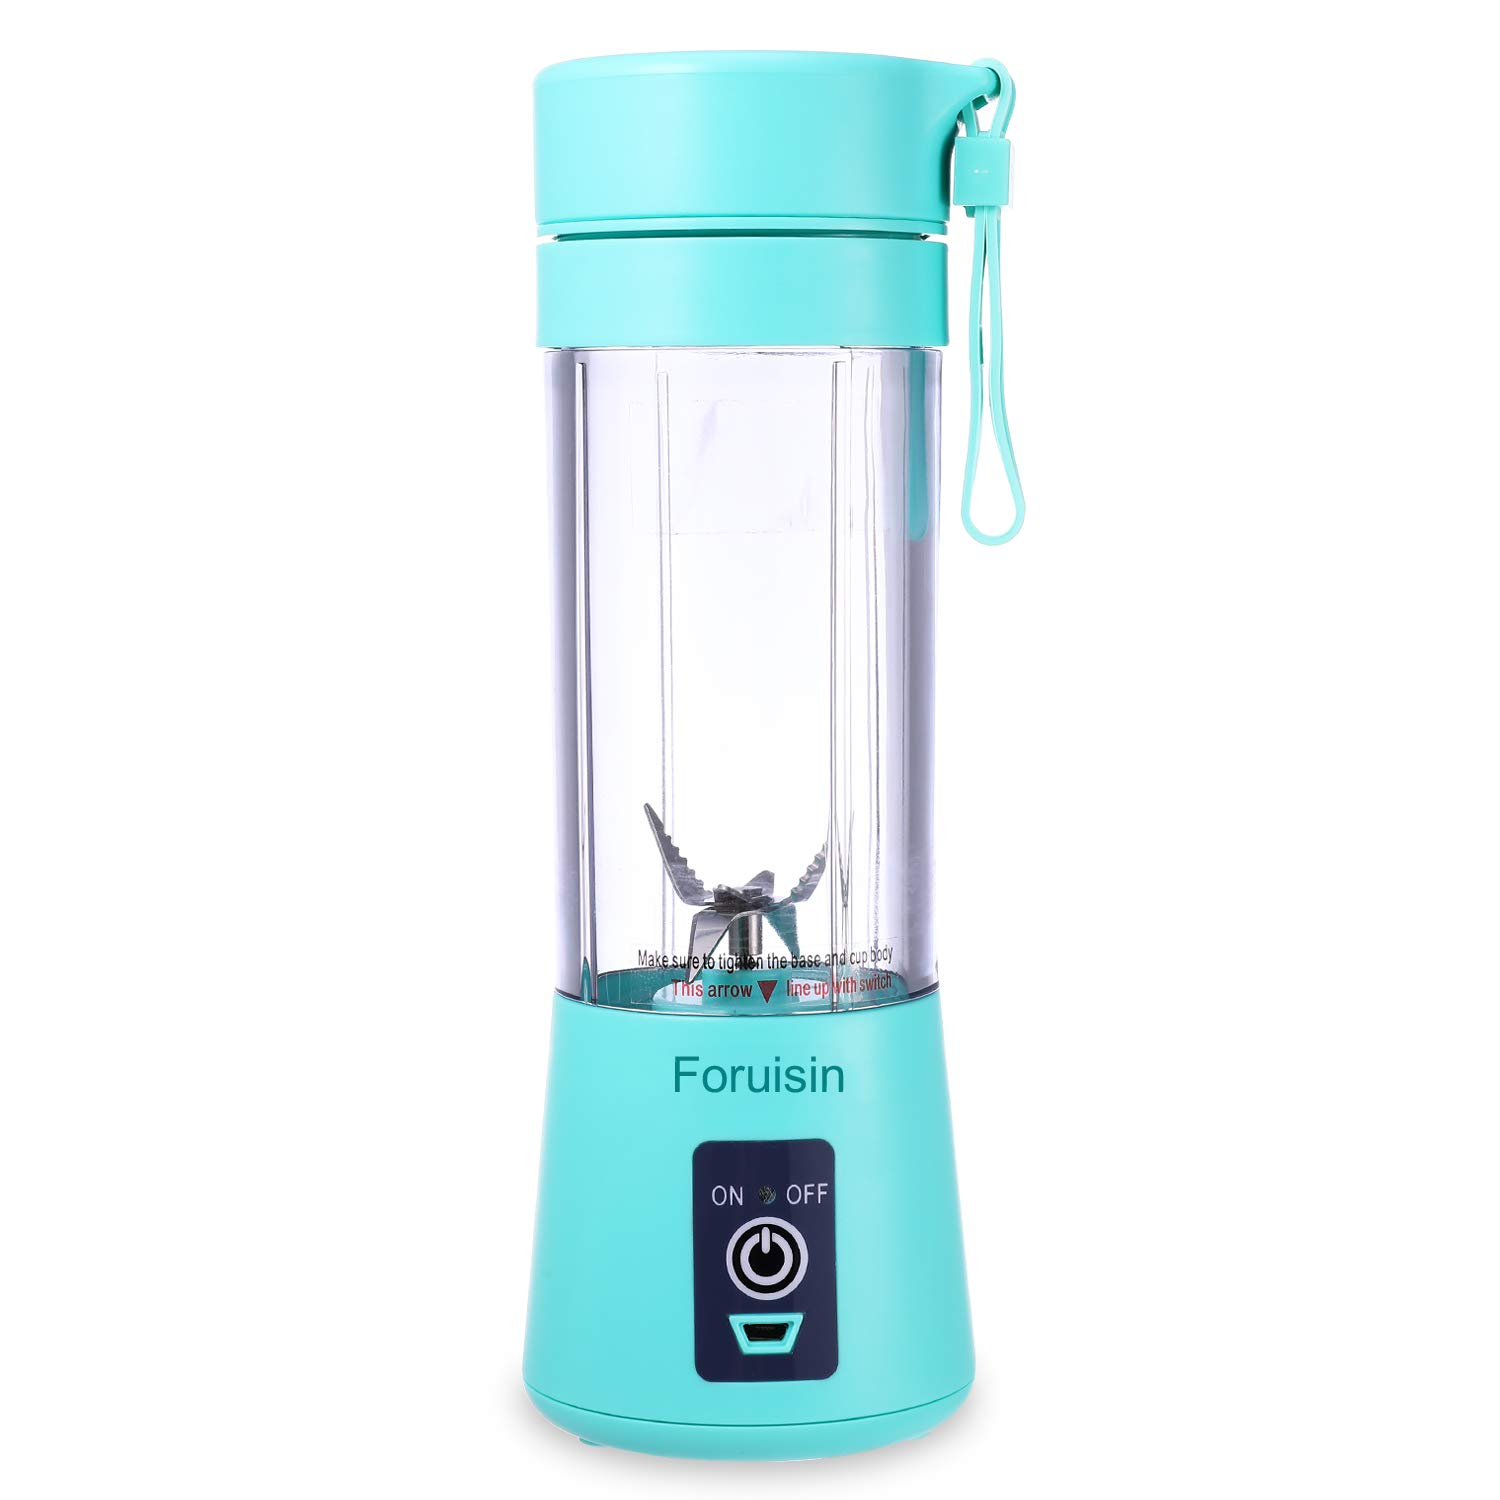 Foruisin Portable Personal Blender, Household Juicer fruit shake Mixer -Six Blades, 380ml Baby cooking machine with USB Charger Cable (Cyan)